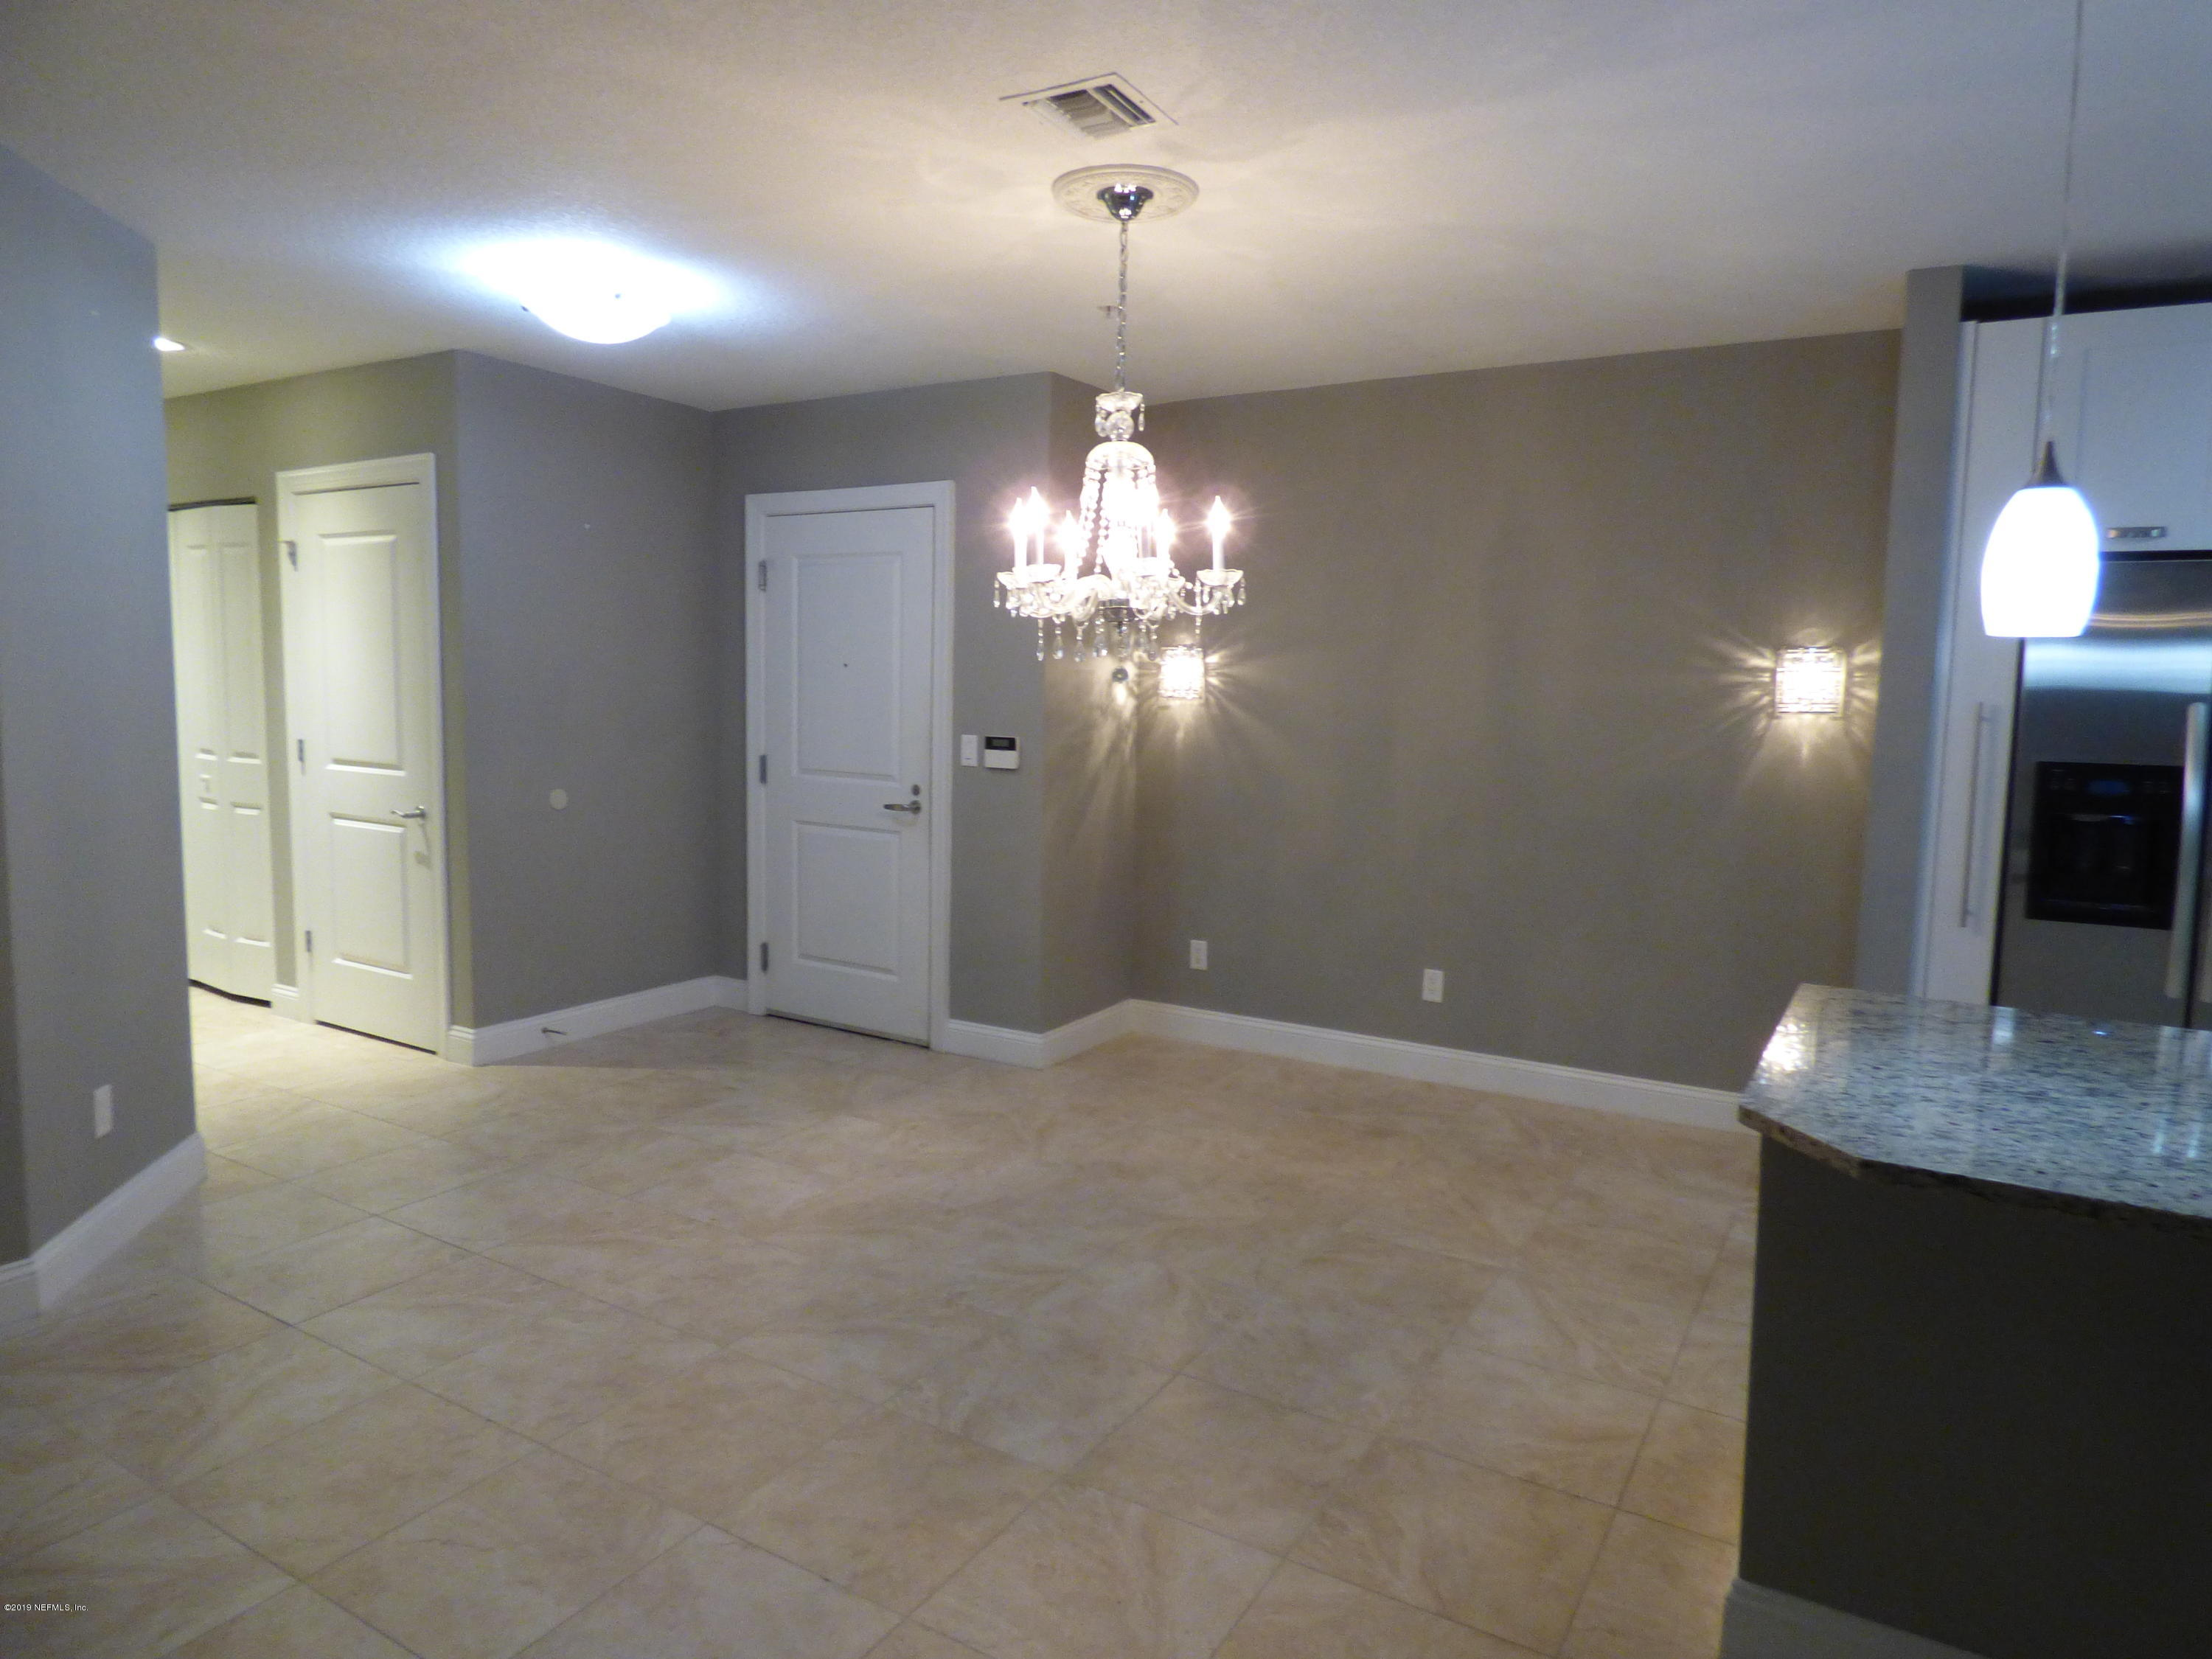 1431 RIVERPLACE, JACKSONVILLE, FLORIDA 32207, 2 Bedrooms Bedrooms, ,2 BathroomsBathrooms,Rental,For sale,RIVERPLACE,1026420